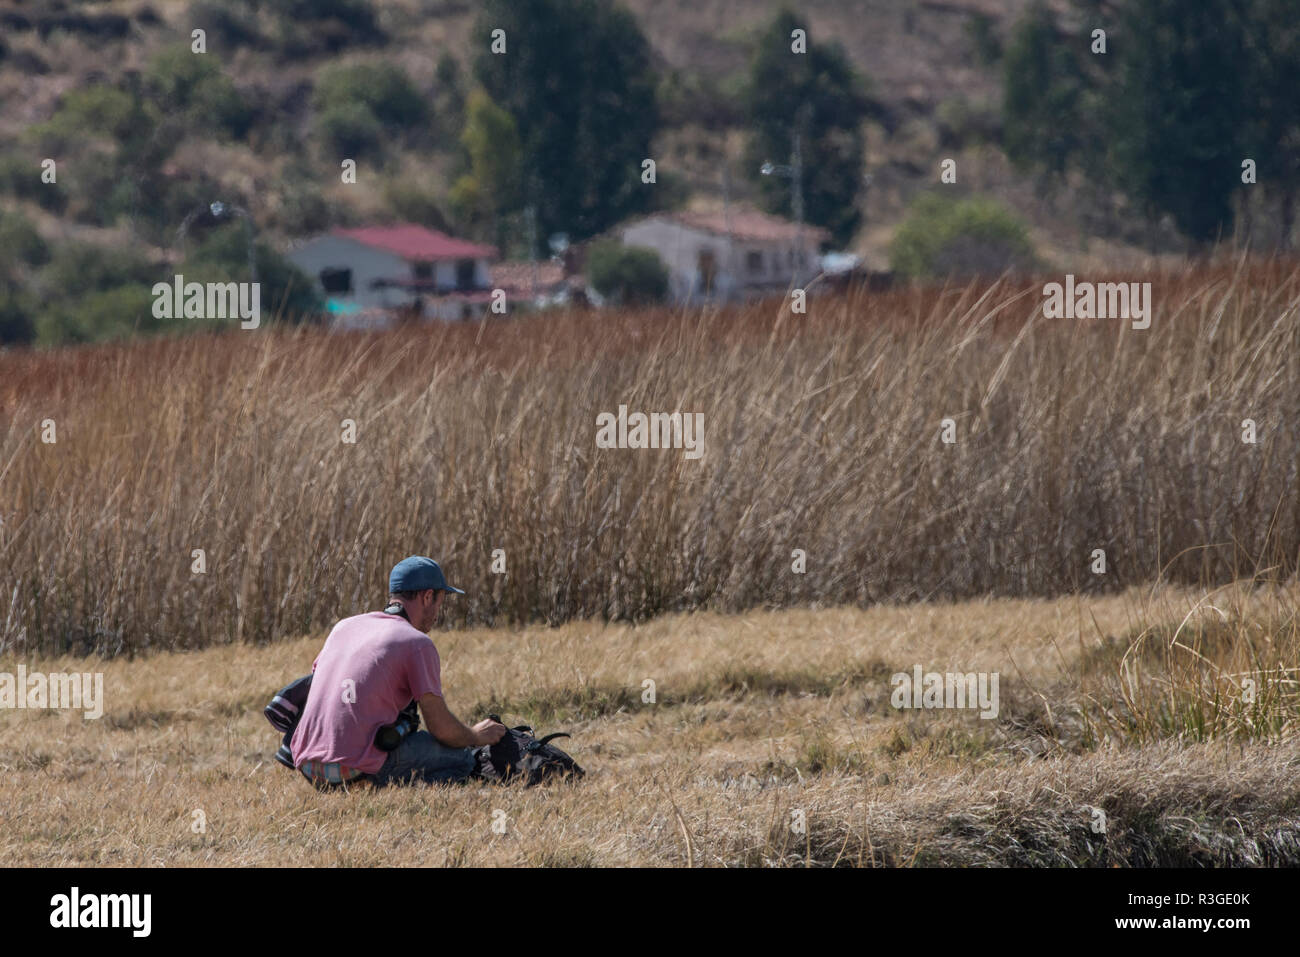 A tourist sits alone in a field in Huarcapay, Peru. - Stock Image